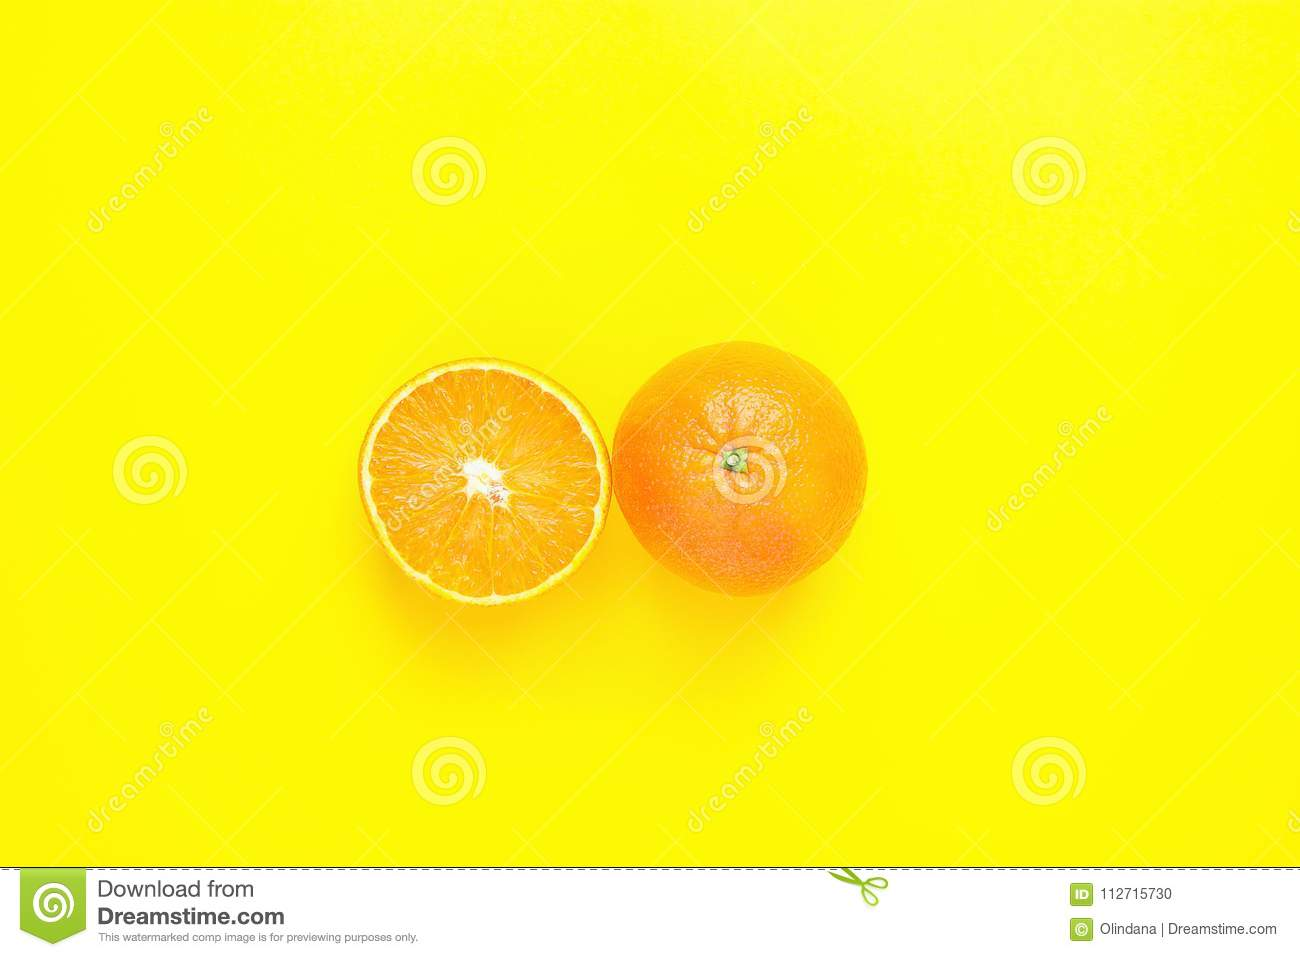 Ripe Juicy Whole and Halved Orange on Solid Yellow Background. Vitamins Healthy Diet Summer Detox Vegan Tropical Fruits